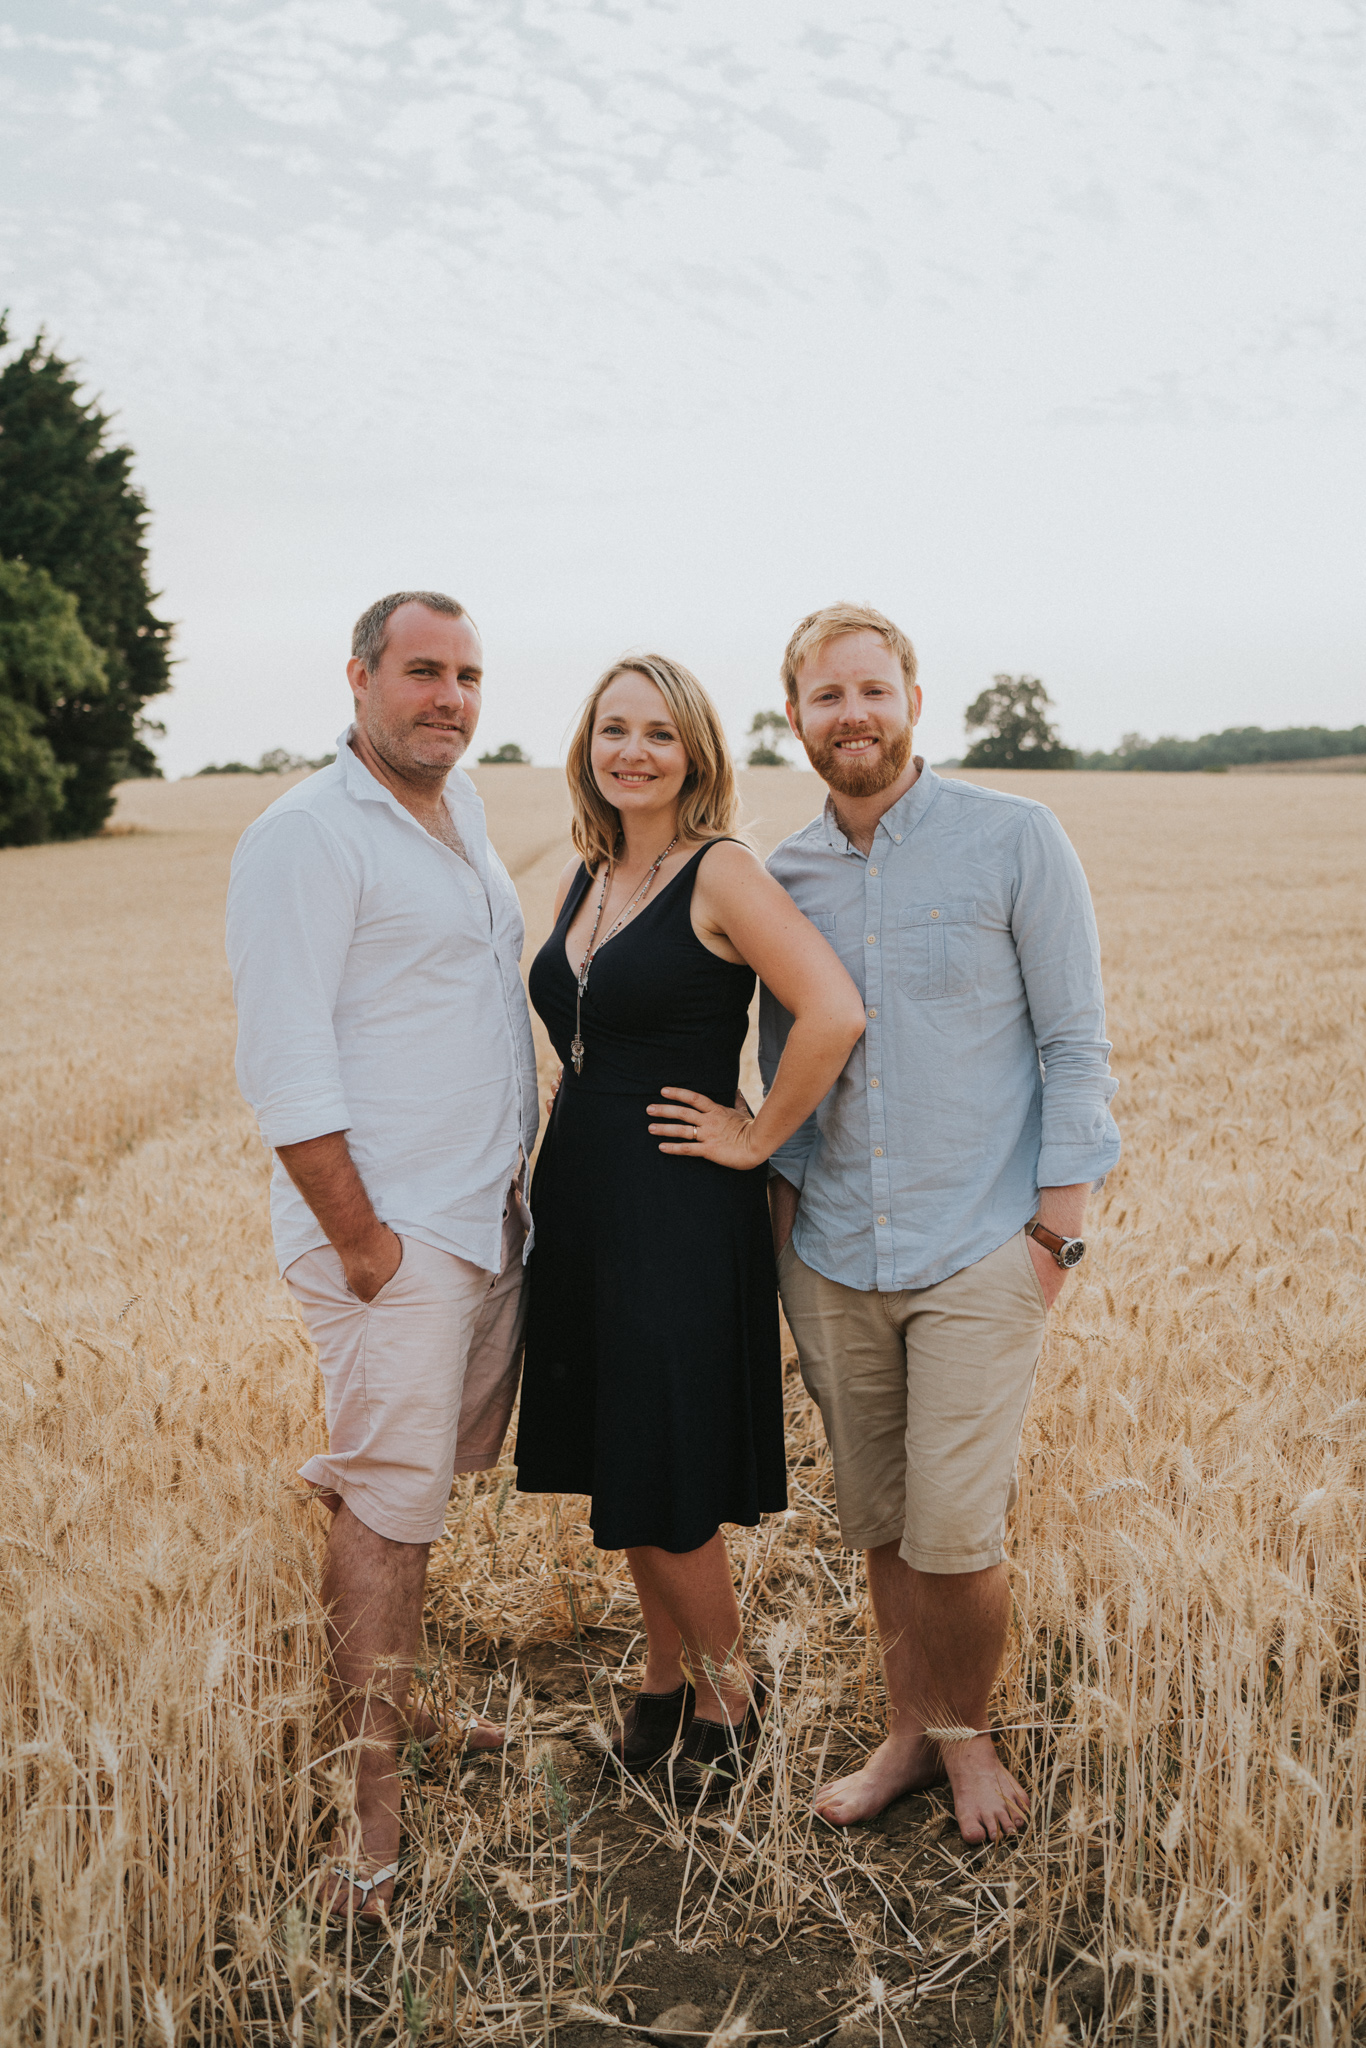 Parkers-Extended-Family-Session-Grace-Elizabeth-Alternative-Wedding-Lifestyle-Photographer-Colchester-Essex-Norfolk-Suffolk-Devon (61 of 62).jpg